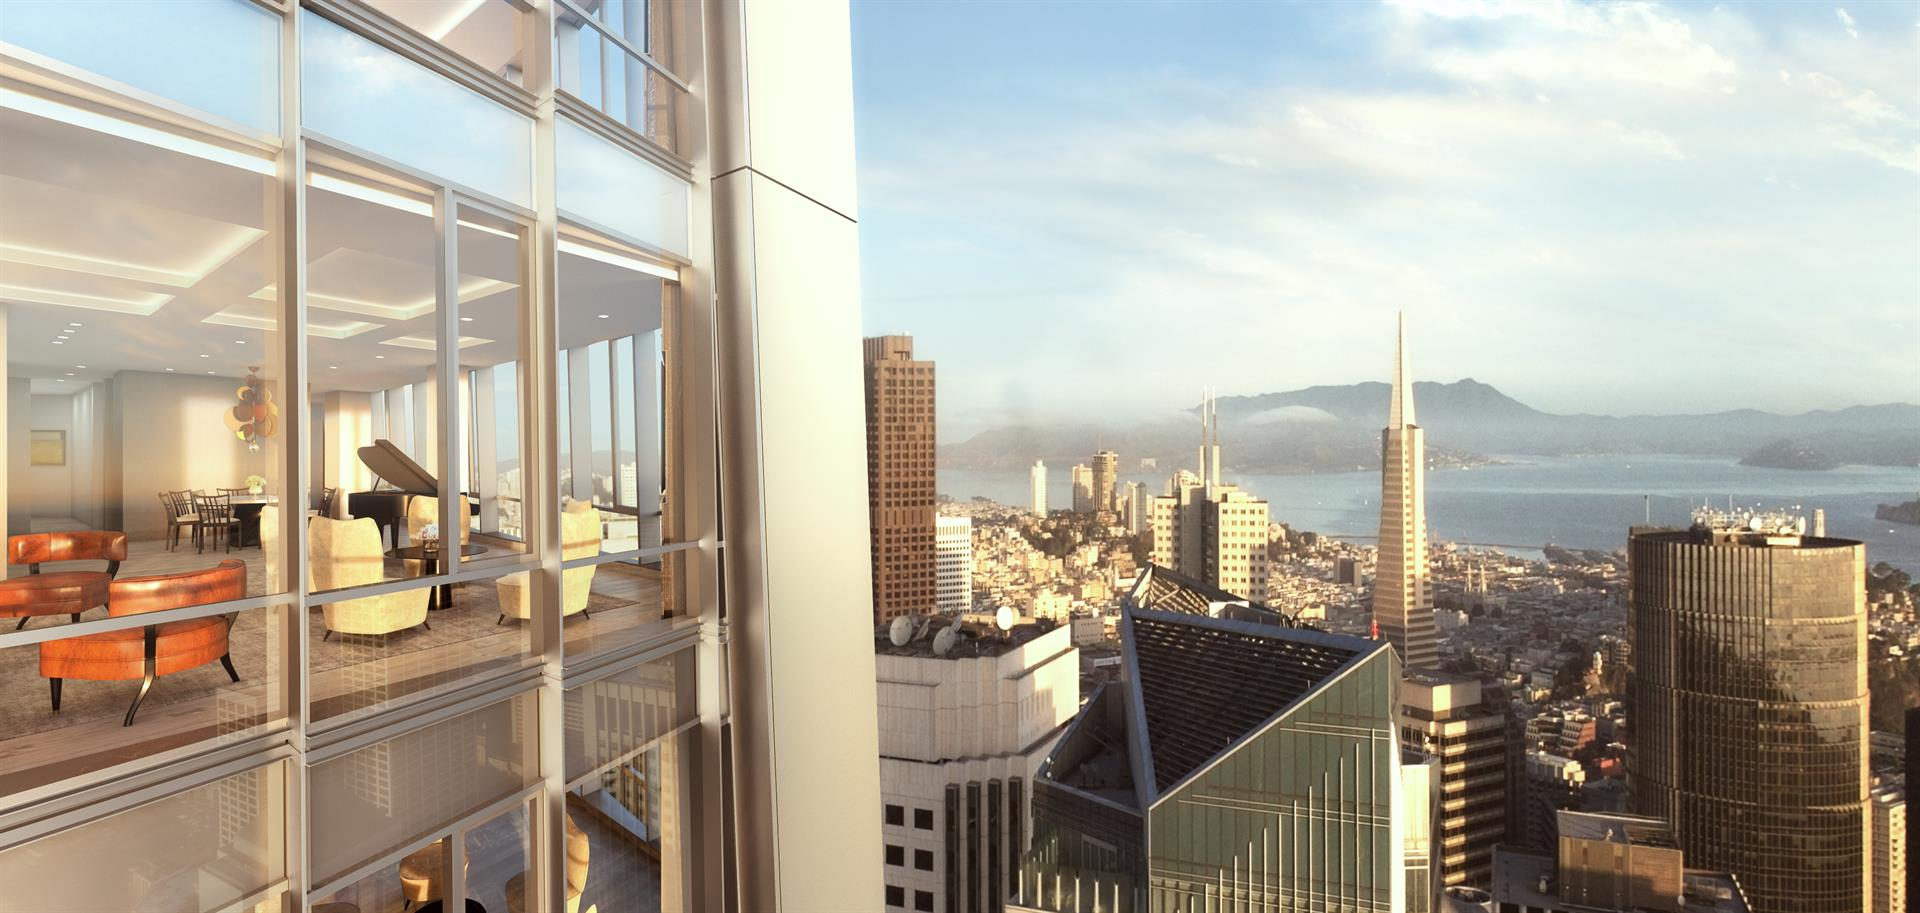 181 Fremont View